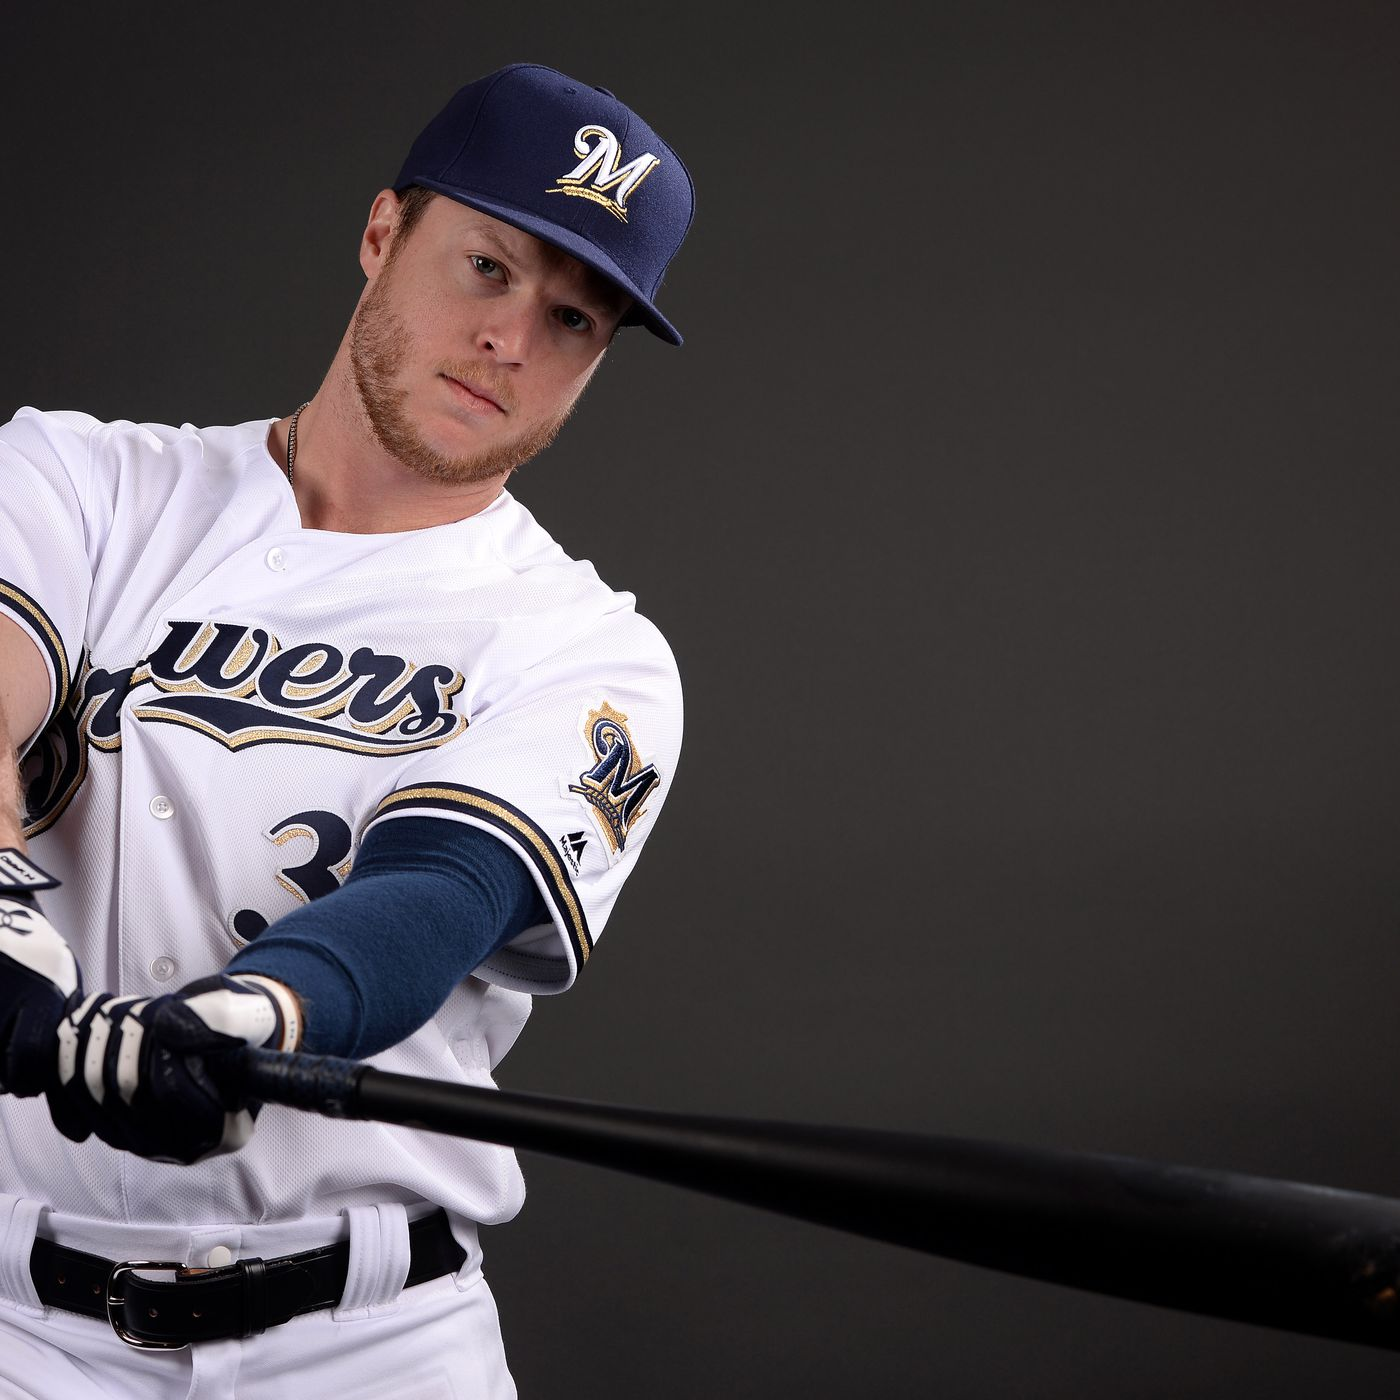 low priced 4cf18 78f63 Royals trade Mike Moustakas to the Brewers for Brett ...